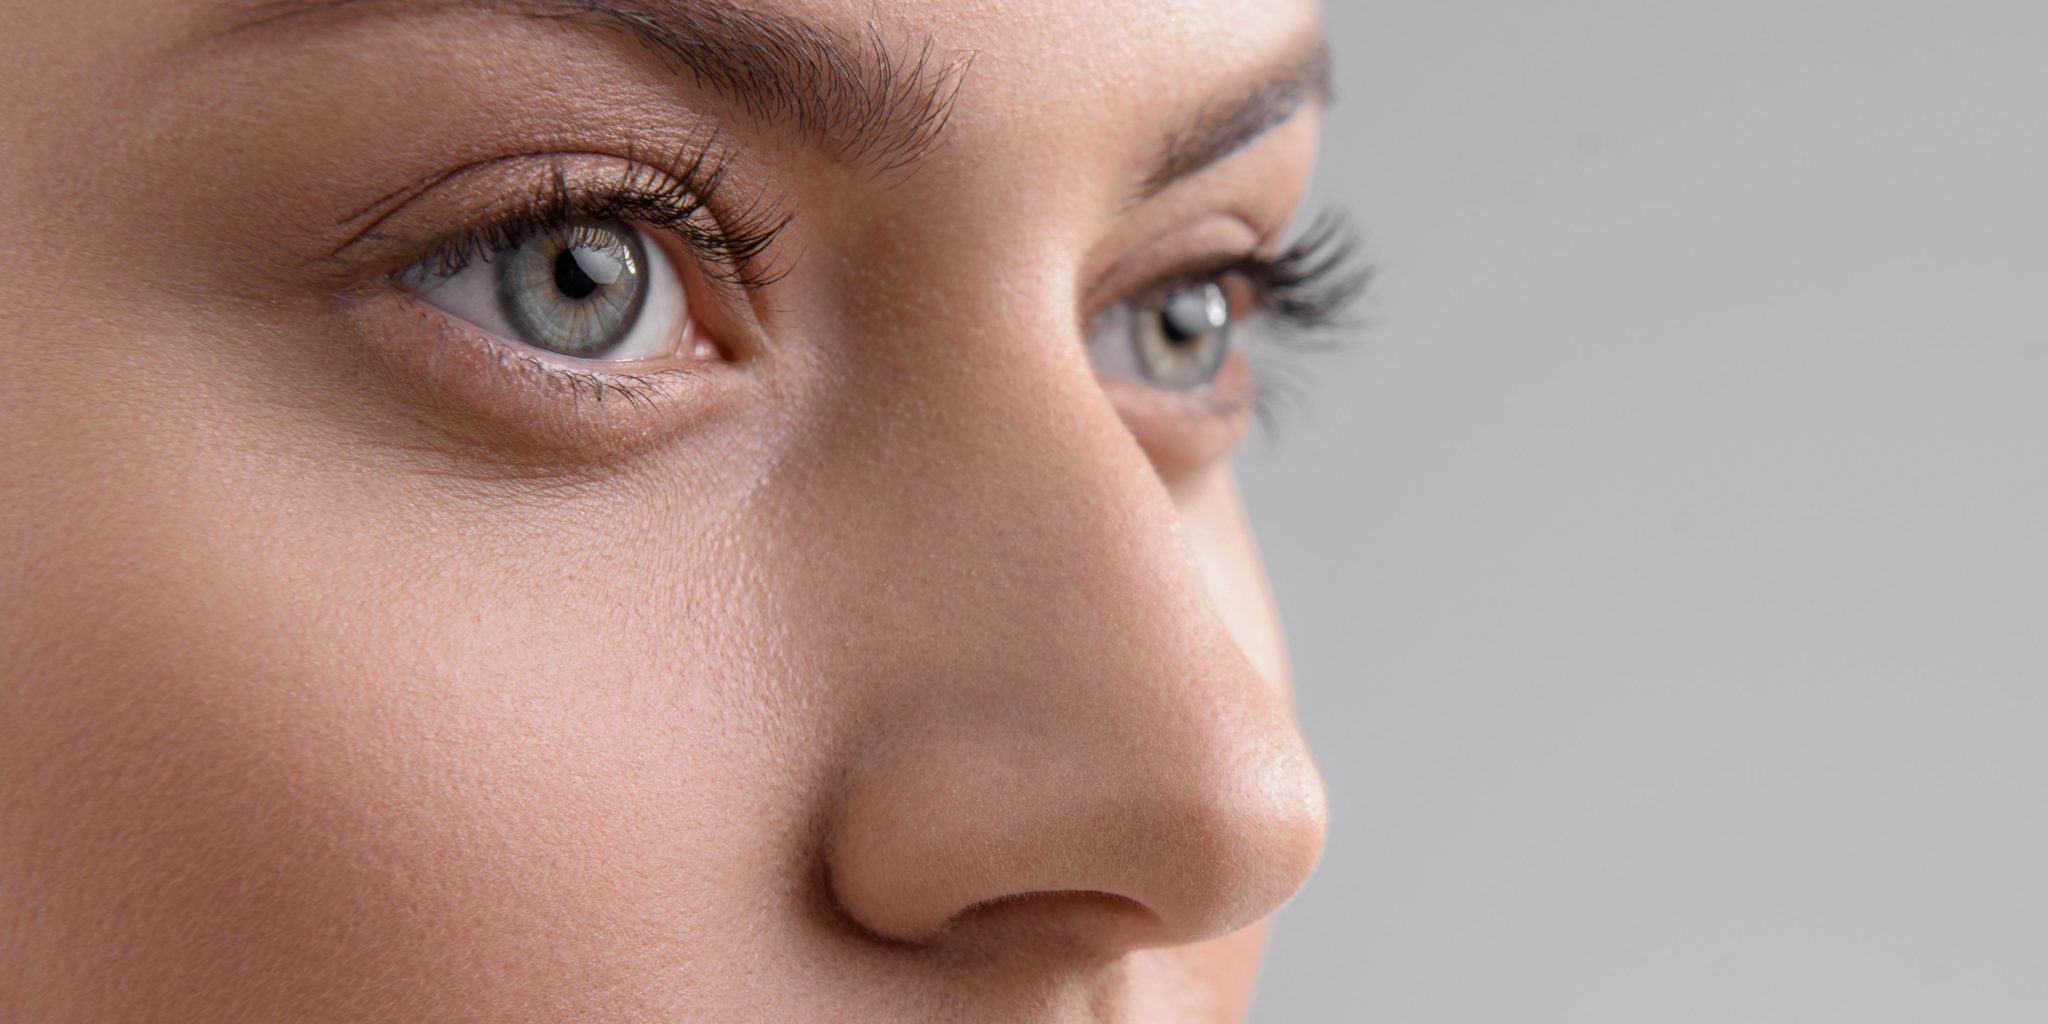 Can Rhinoplasty Fix a Crooked Nose?